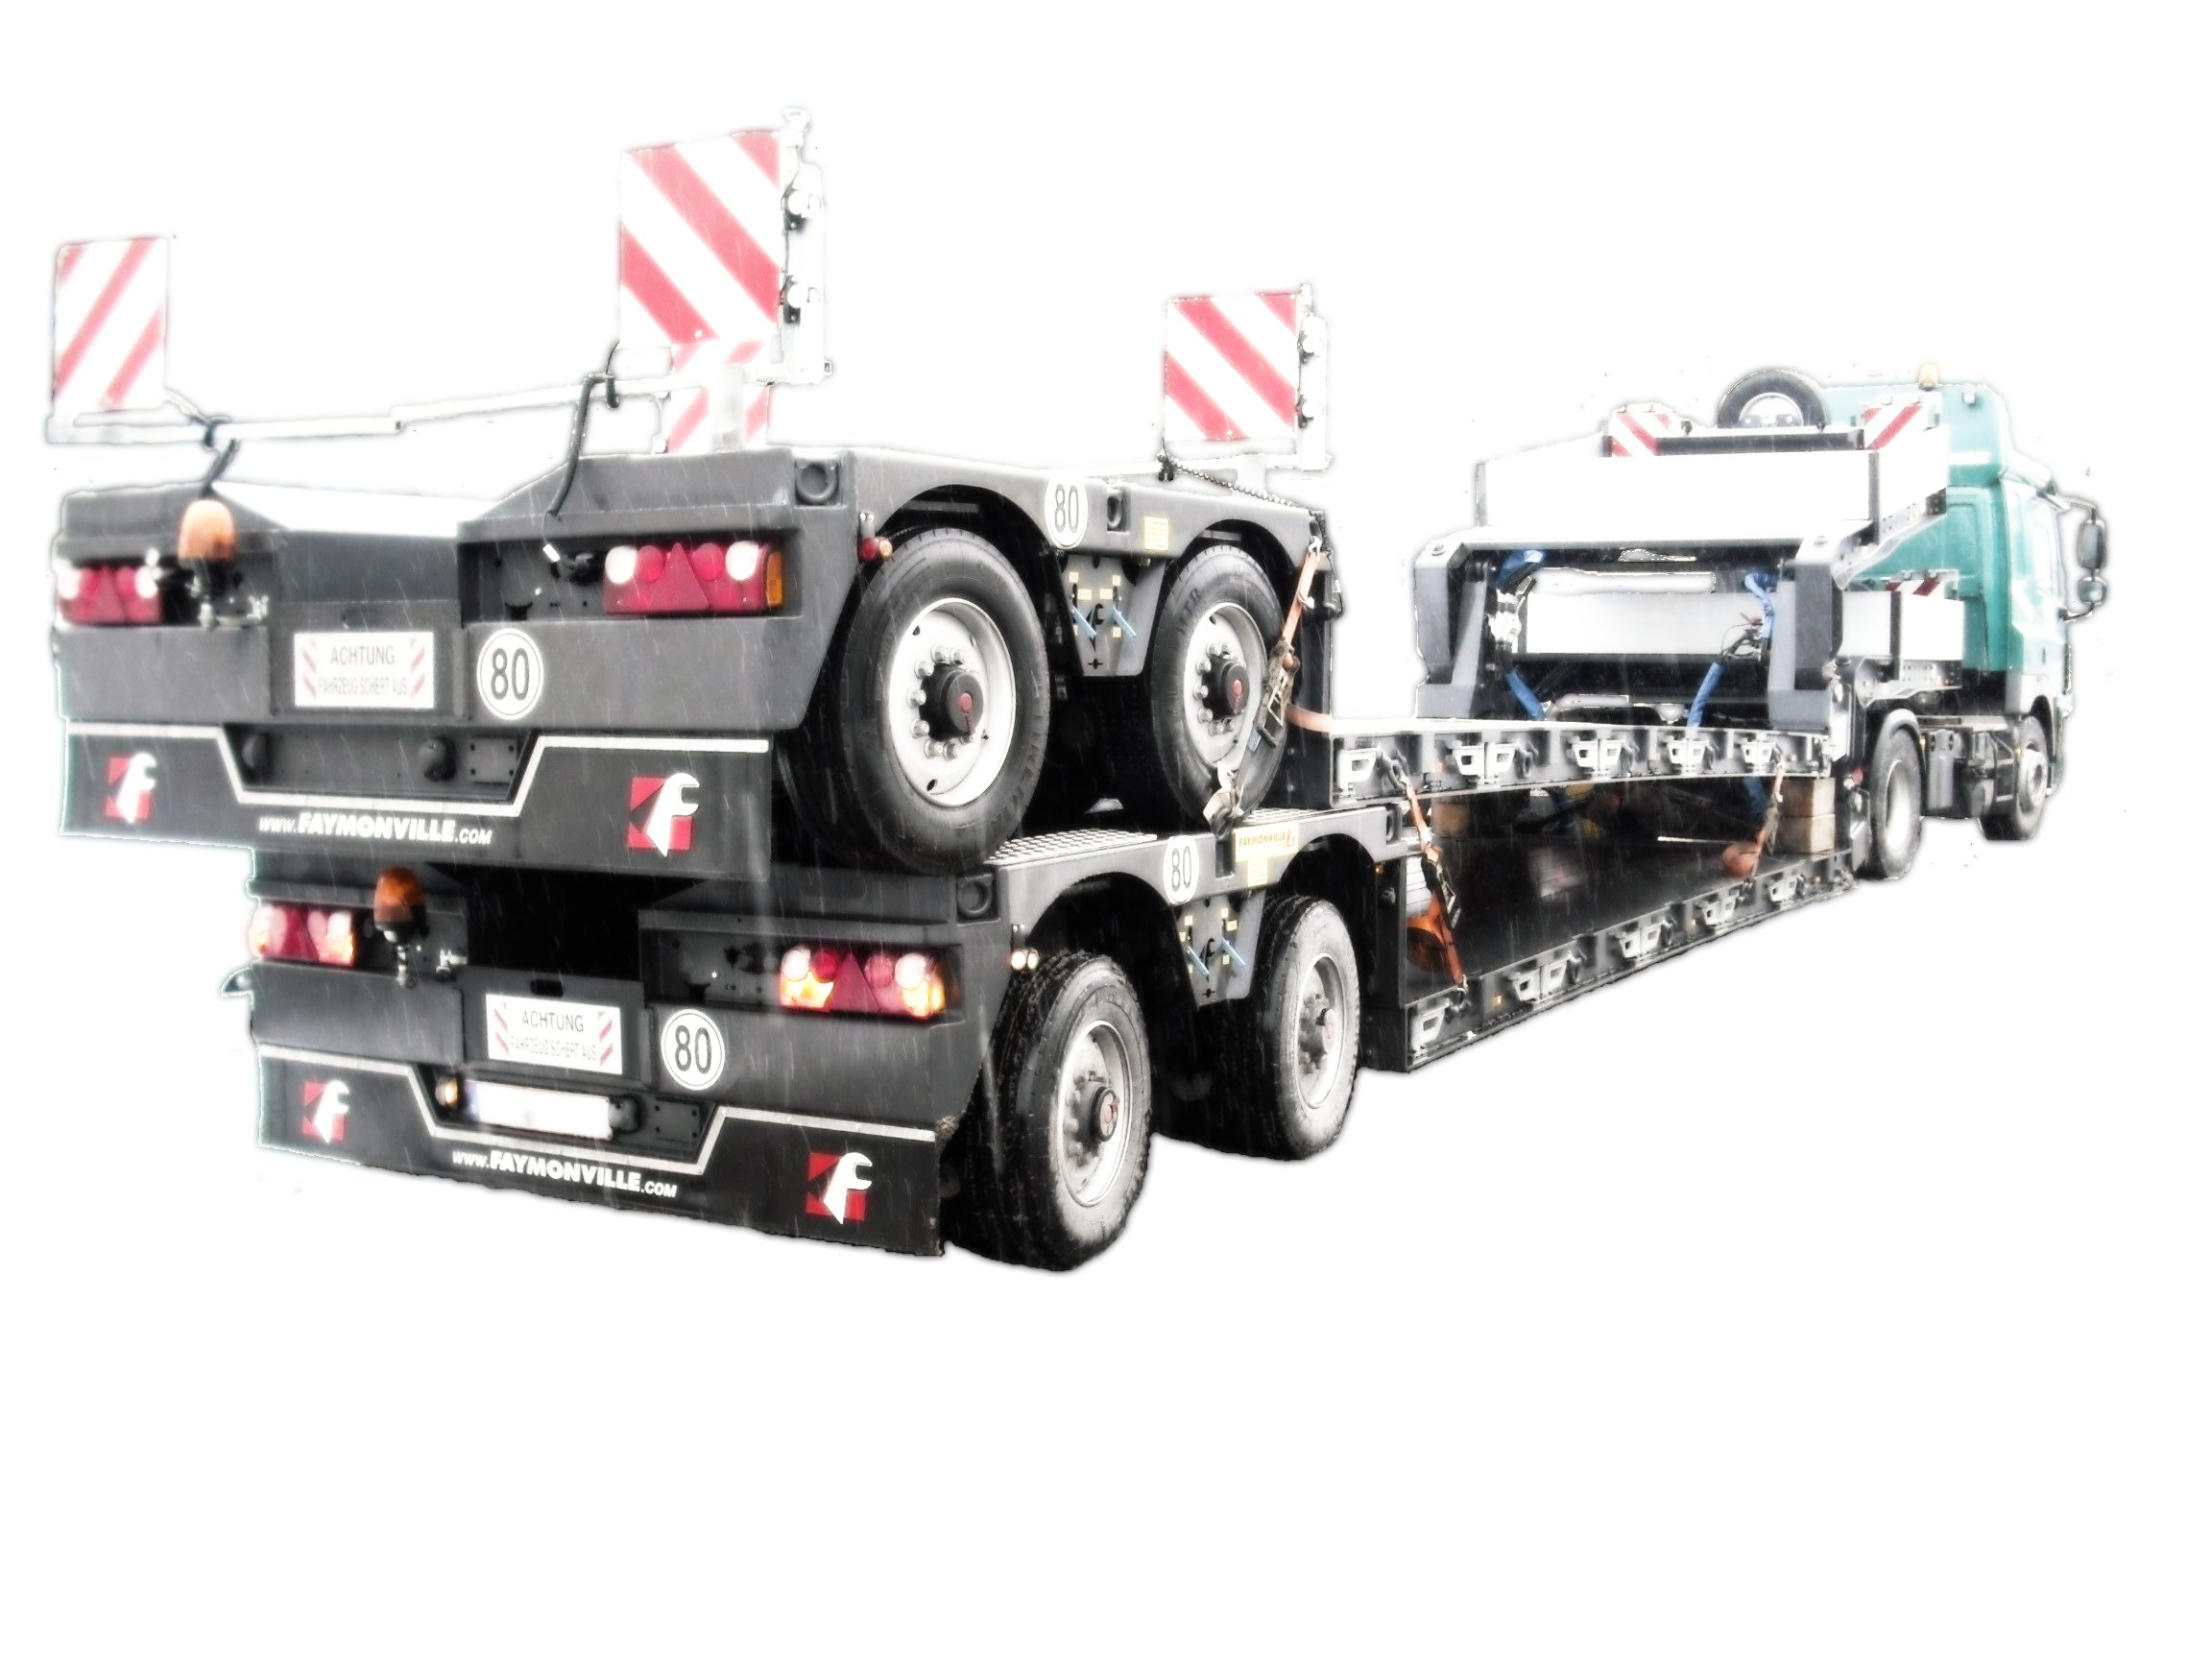 Start with heavy trailer vehicles